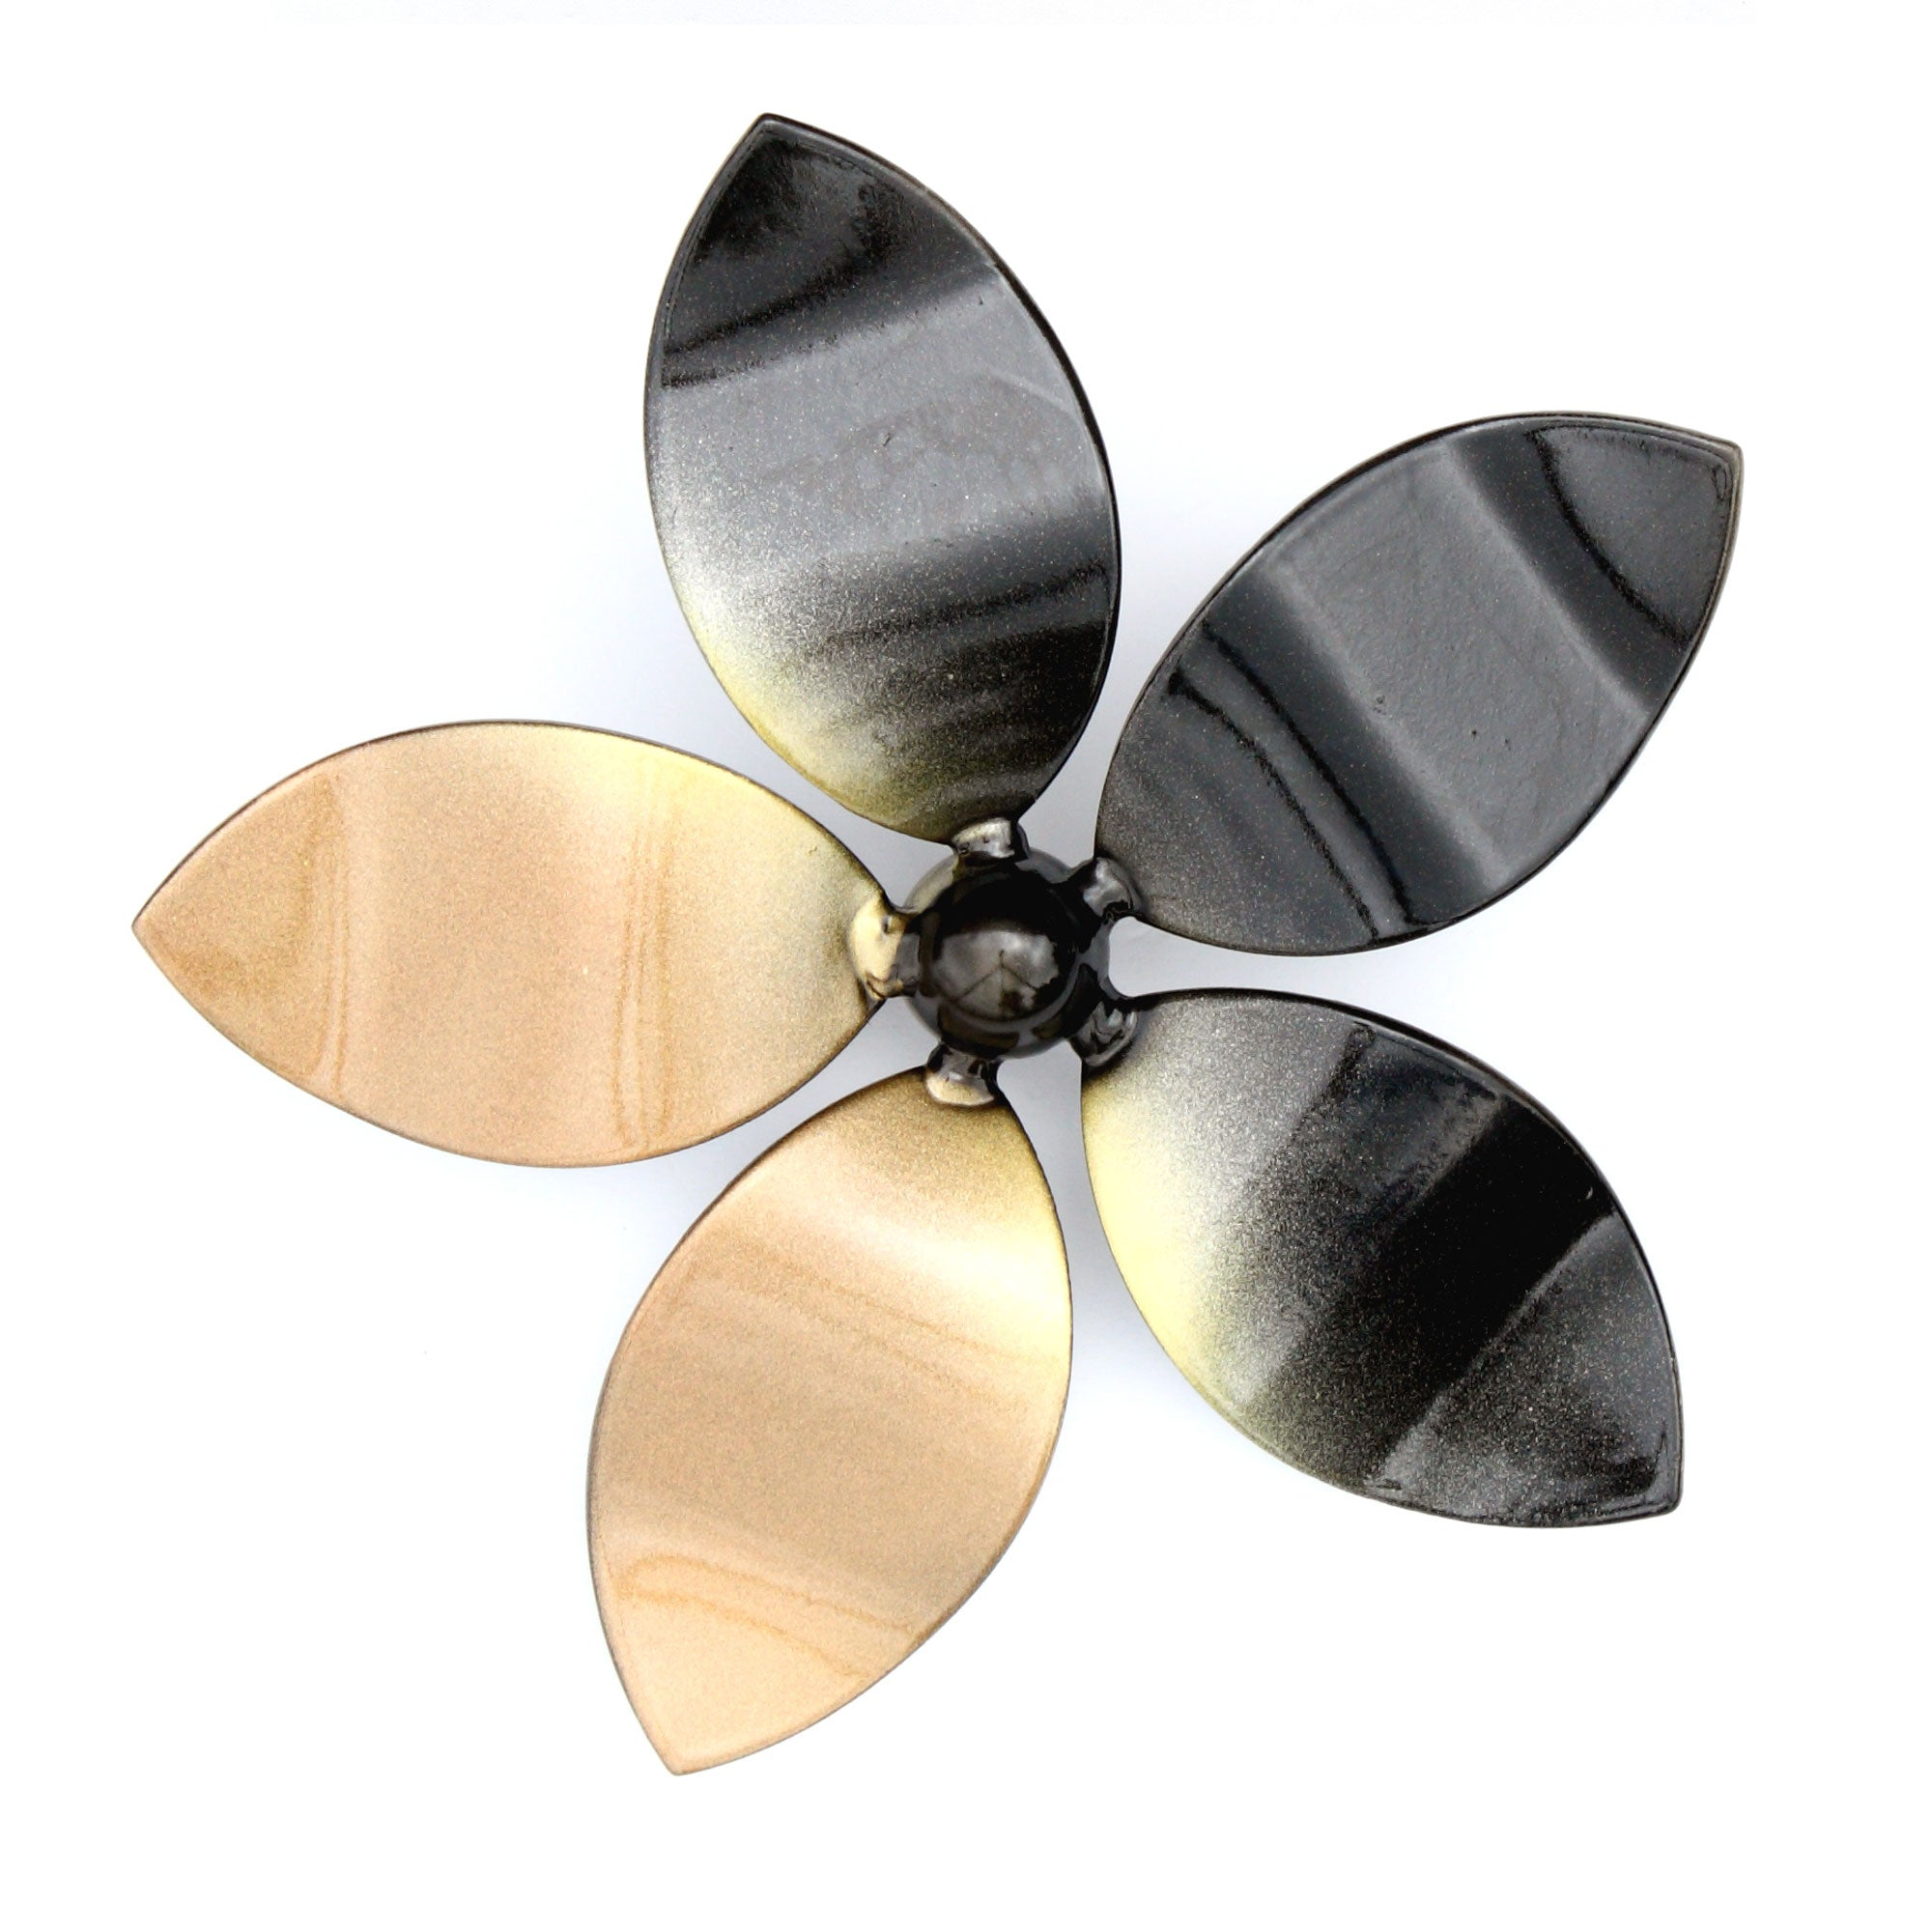 Interconnecting Metal Flower Vine | Metal Wall Art Decor With Two Interchangeable Flowers